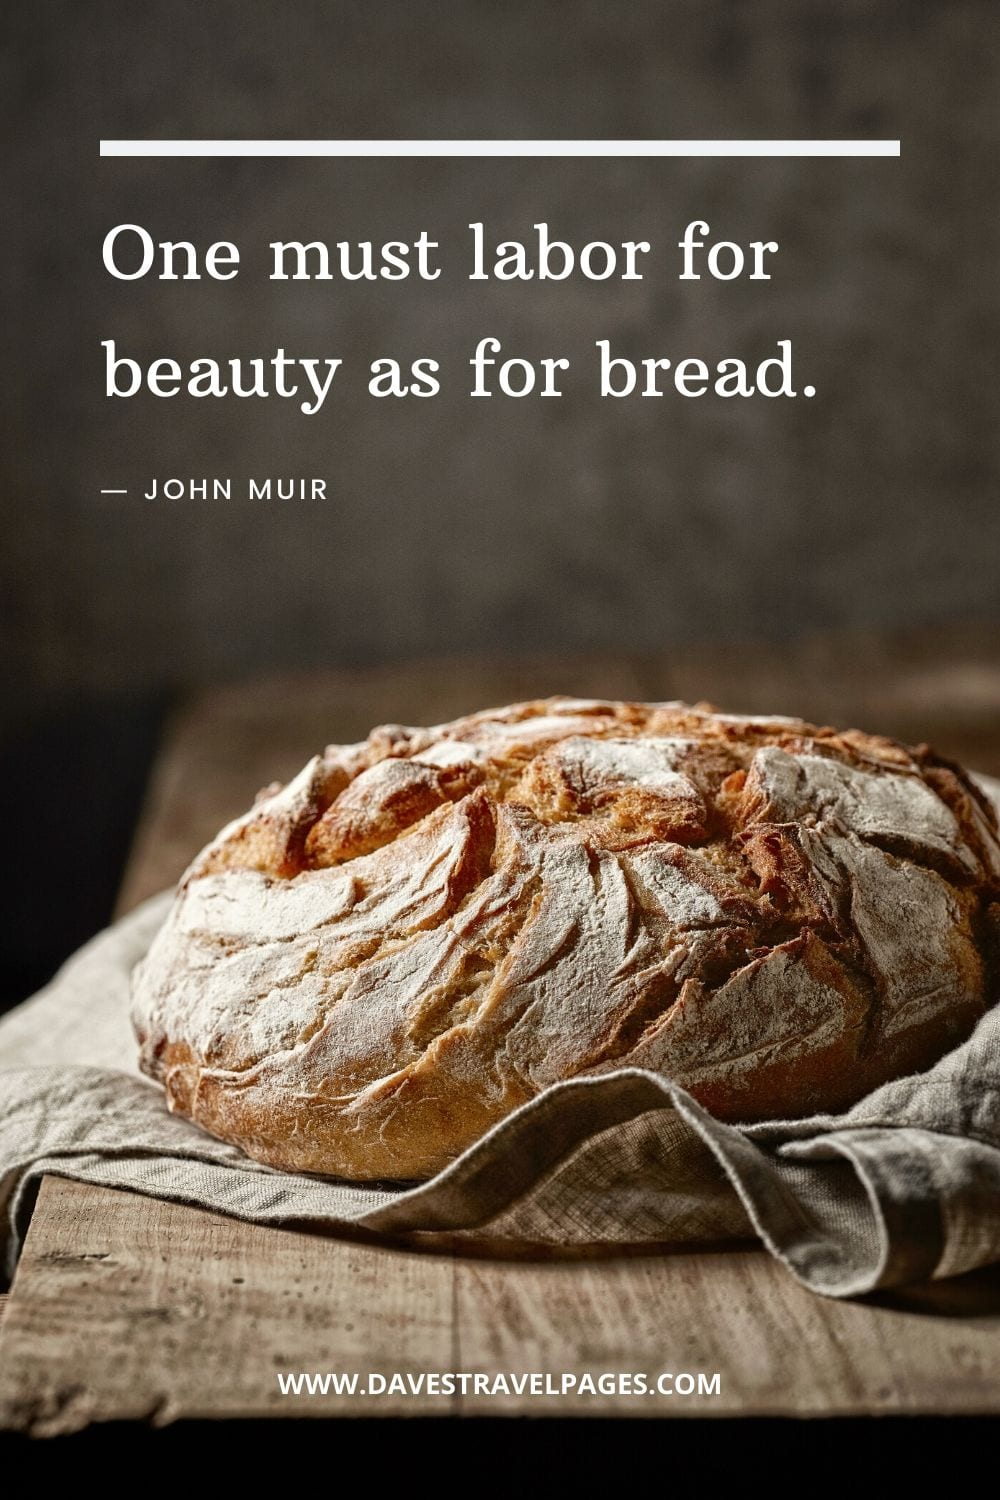 """John Muir Quotes - """"One must labor for beauty as for bread."""""""